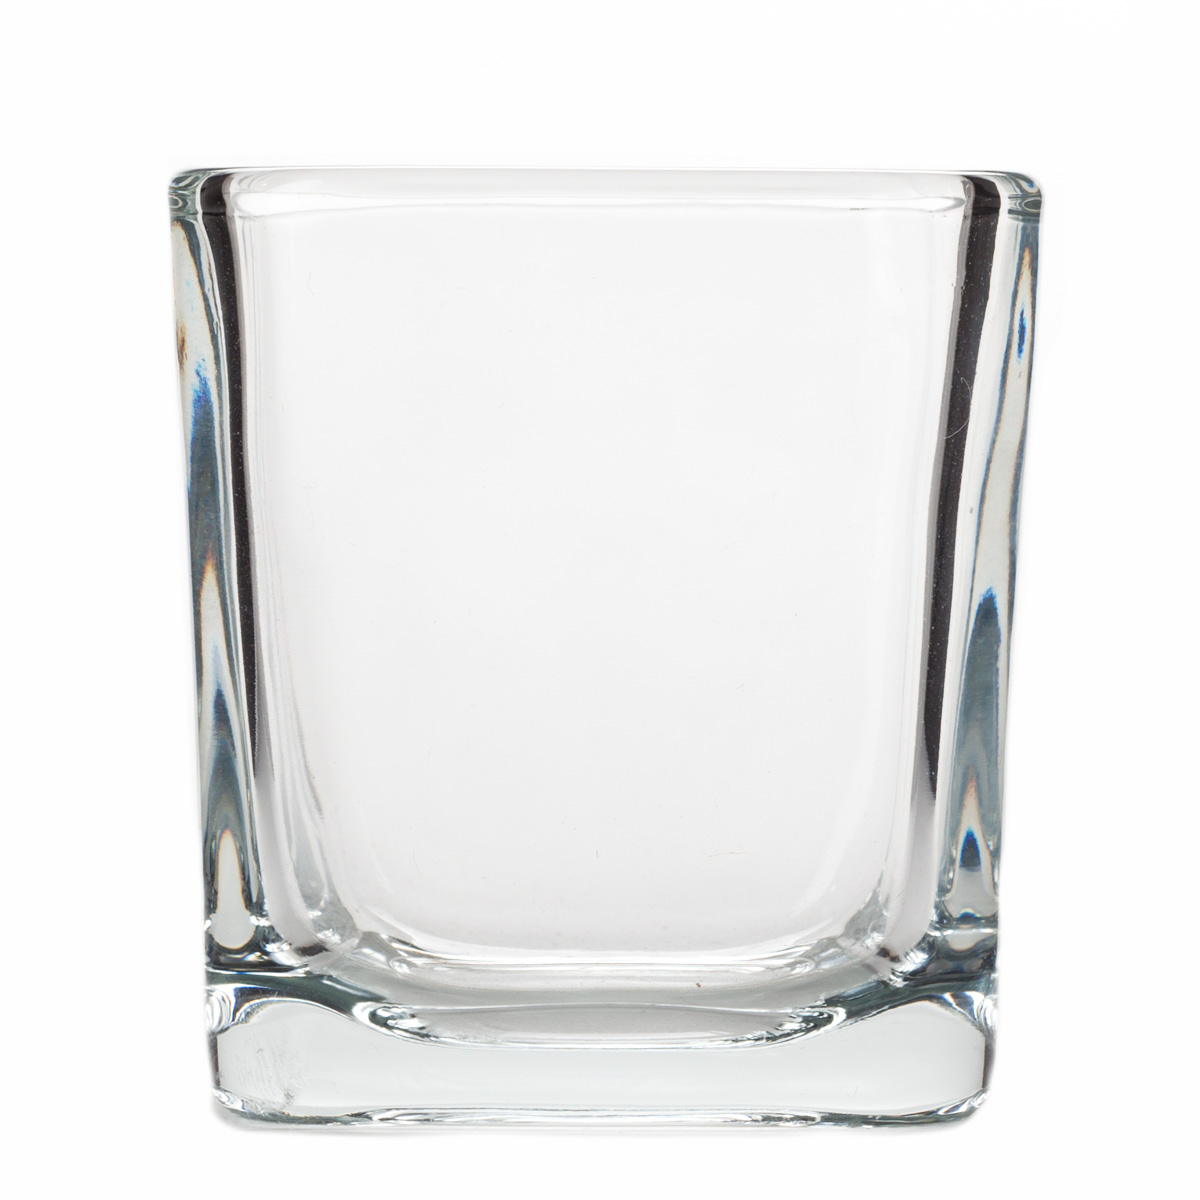 3x3 glass cube votive holder